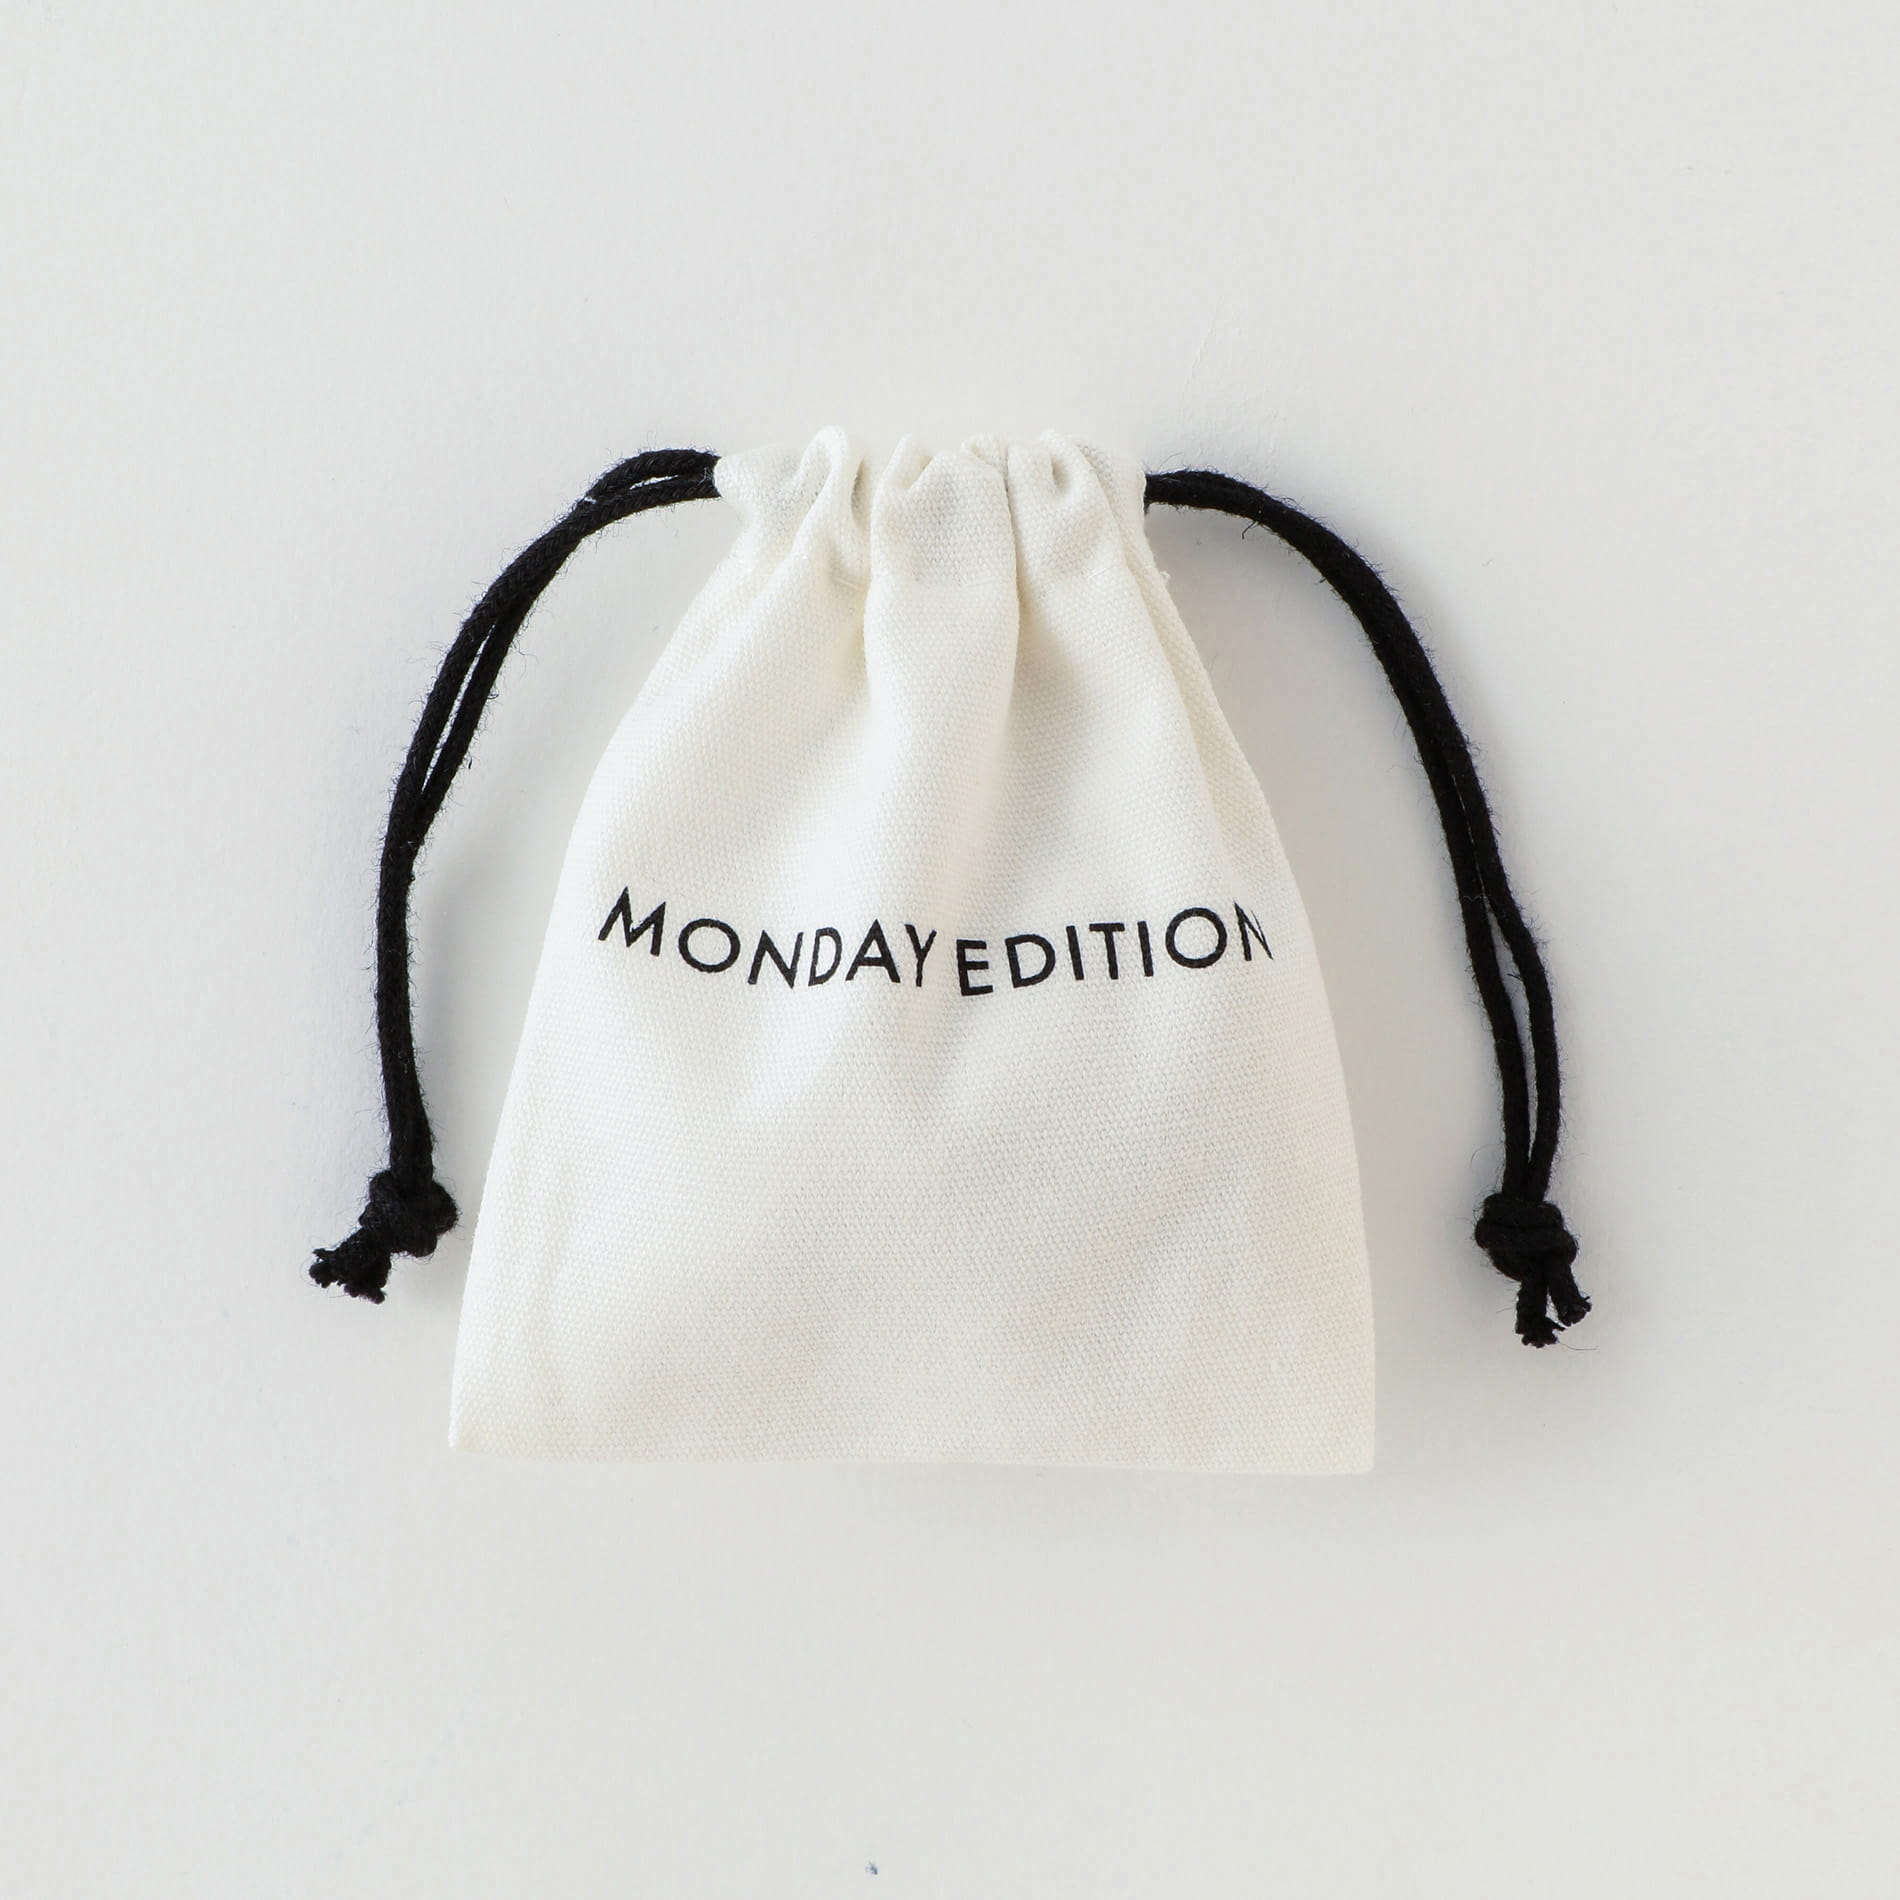 【MONDAY EDITION】WOMEN チェーンネックレス MENL080207GMF